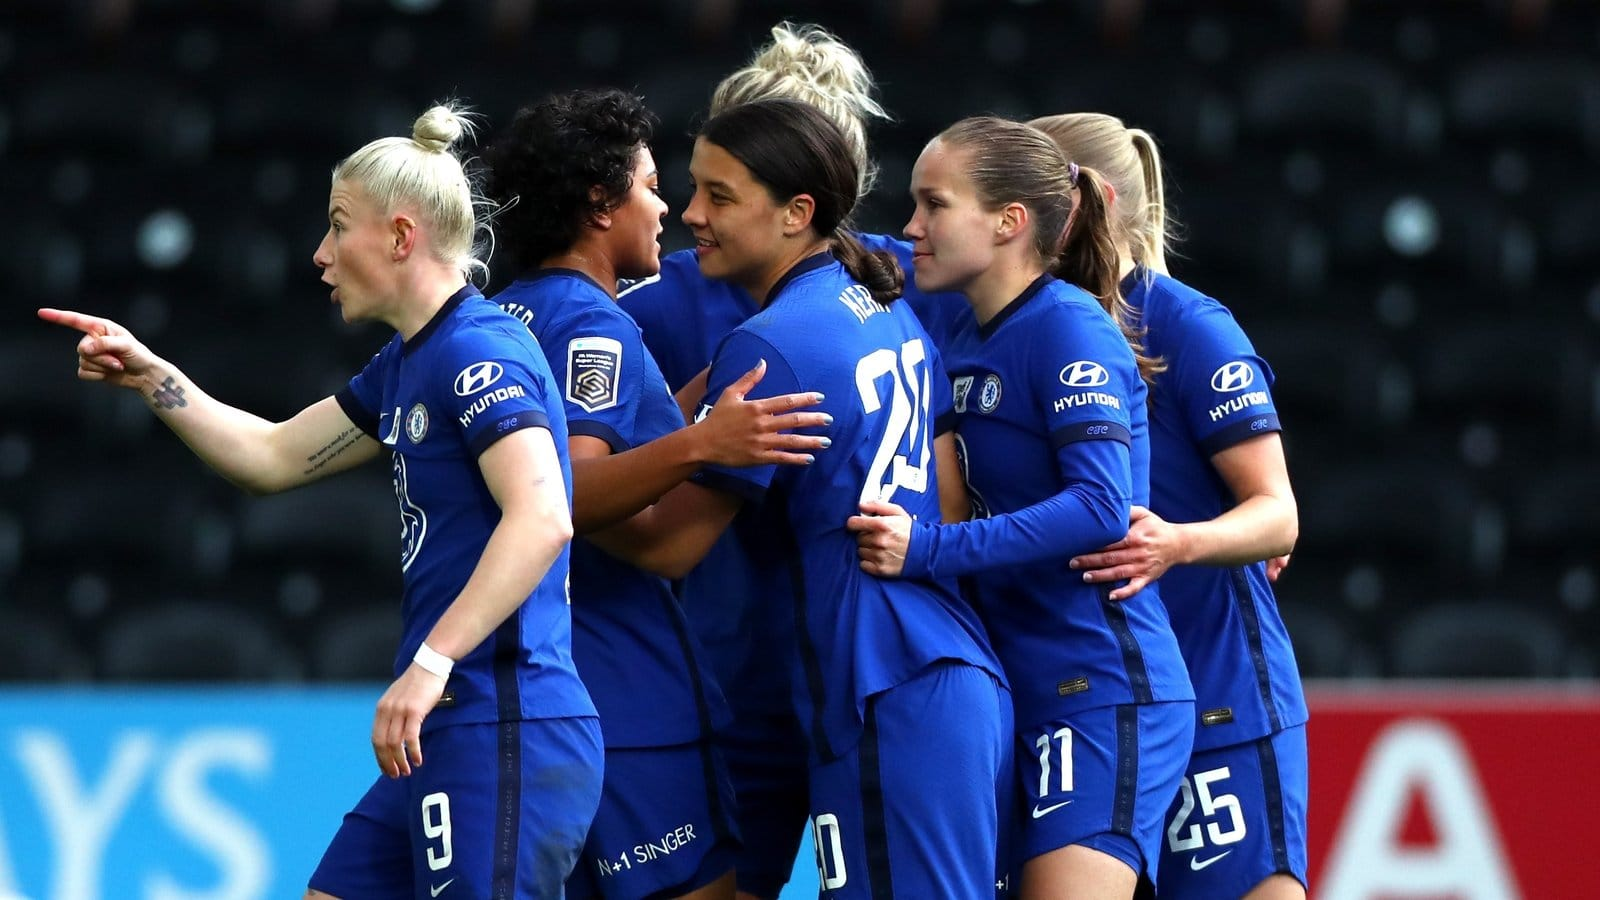 chelsea-switch-one-step-nearer-to-wsl-title.jpg